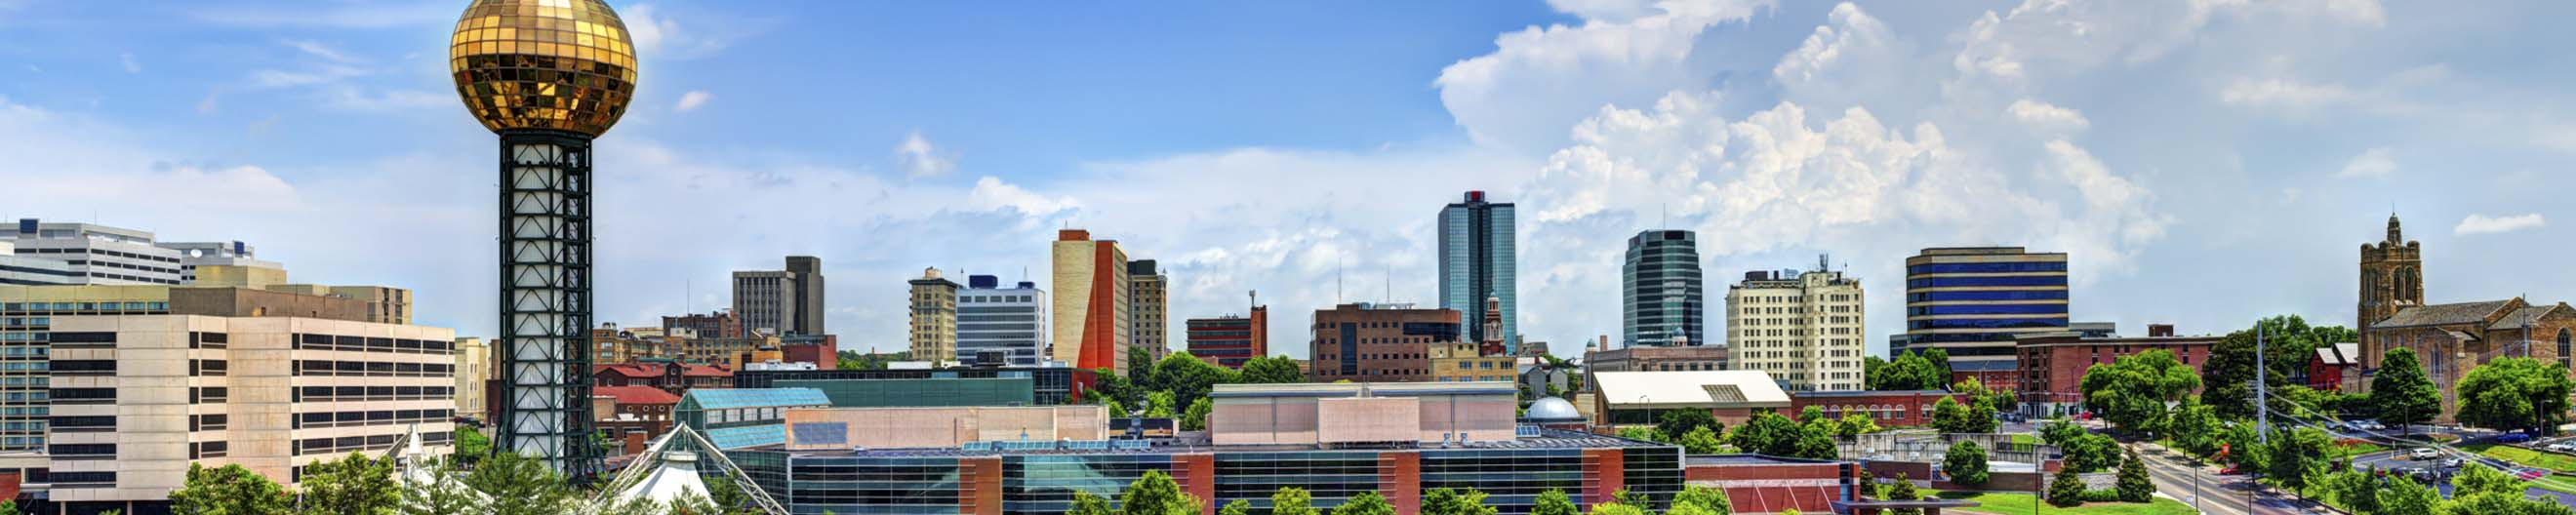 Car Rental Knoxville - Cheap Rental Cars From $8